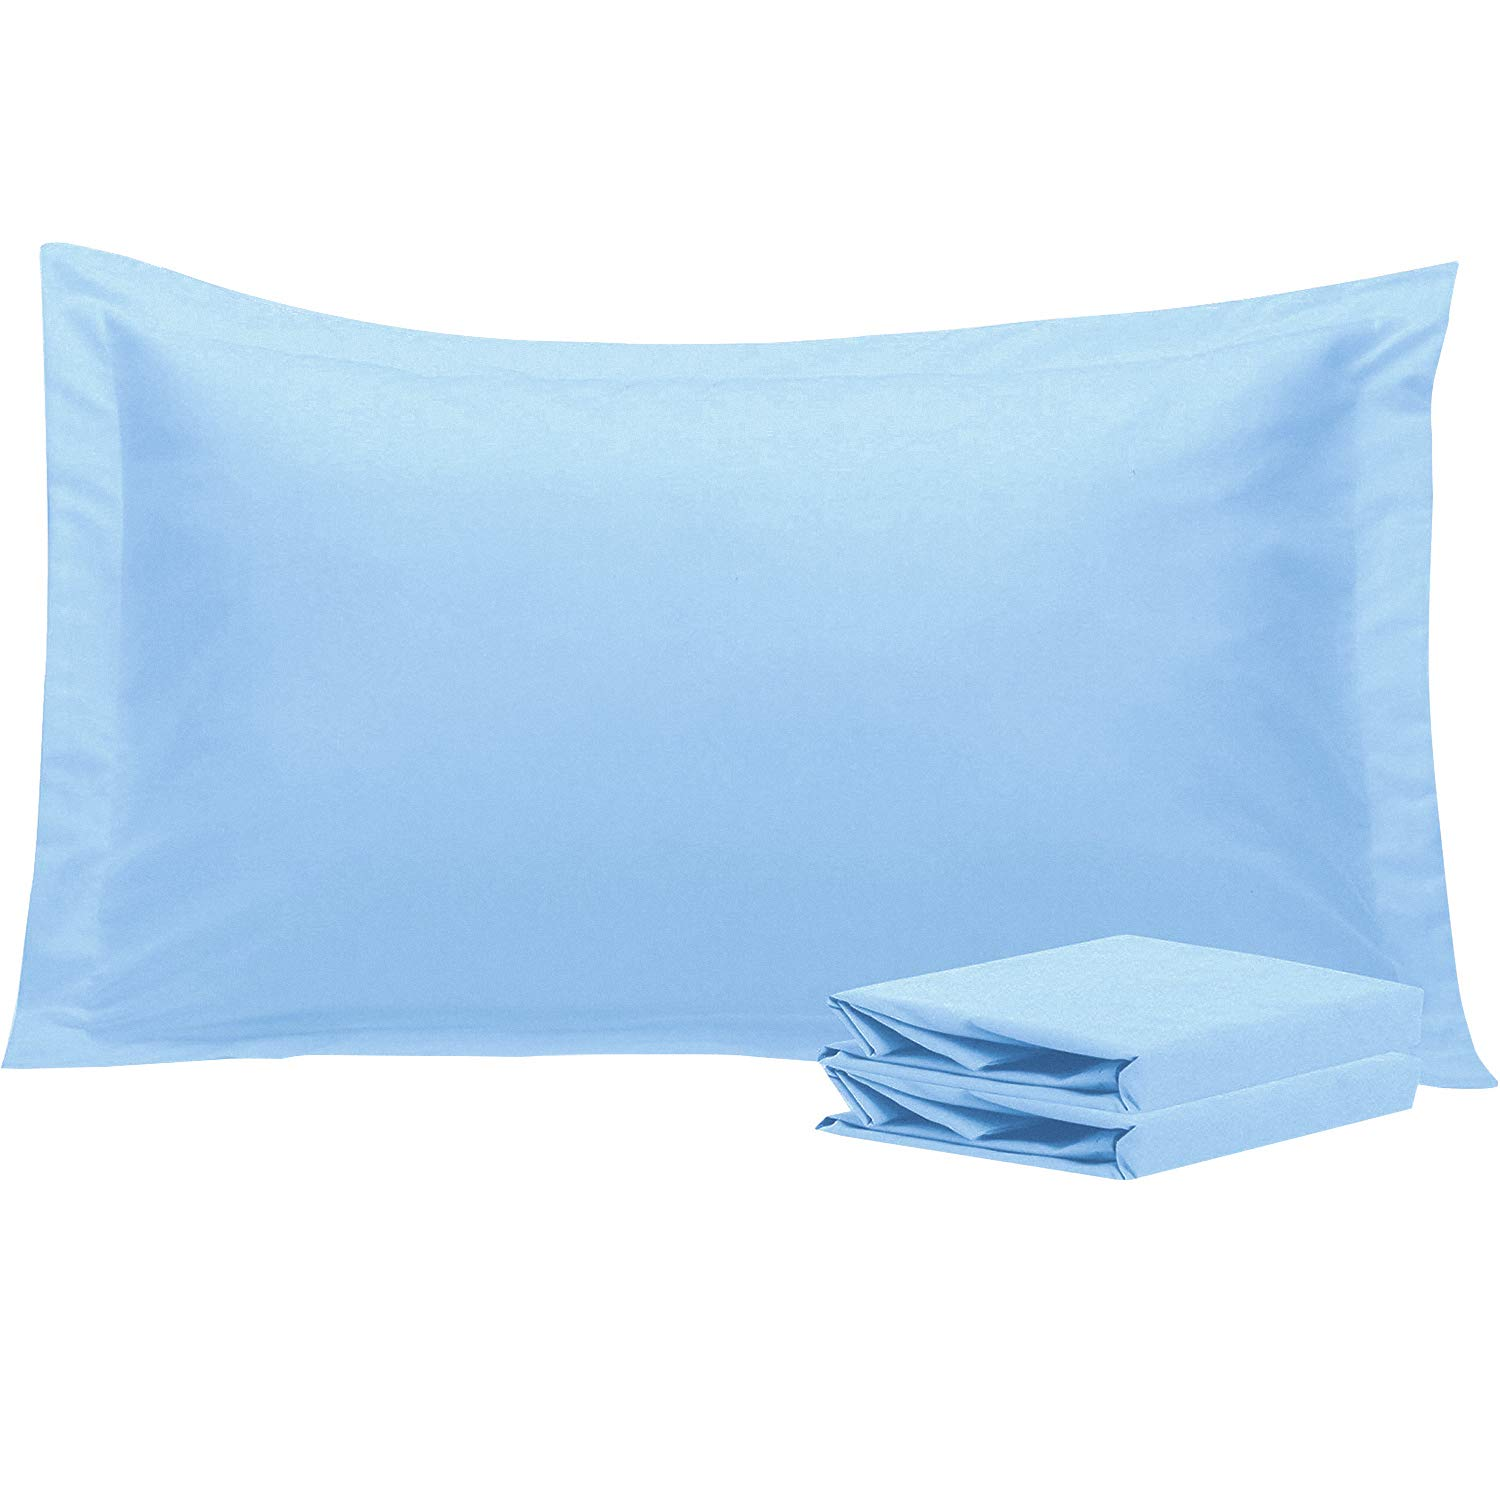 NTBAY King Pillow Shams, Set of 2, 100% Brushed Microfiber, Soft and Cozy, Wrinkle, Fade, Stain Resistant (Sky Blue, King)